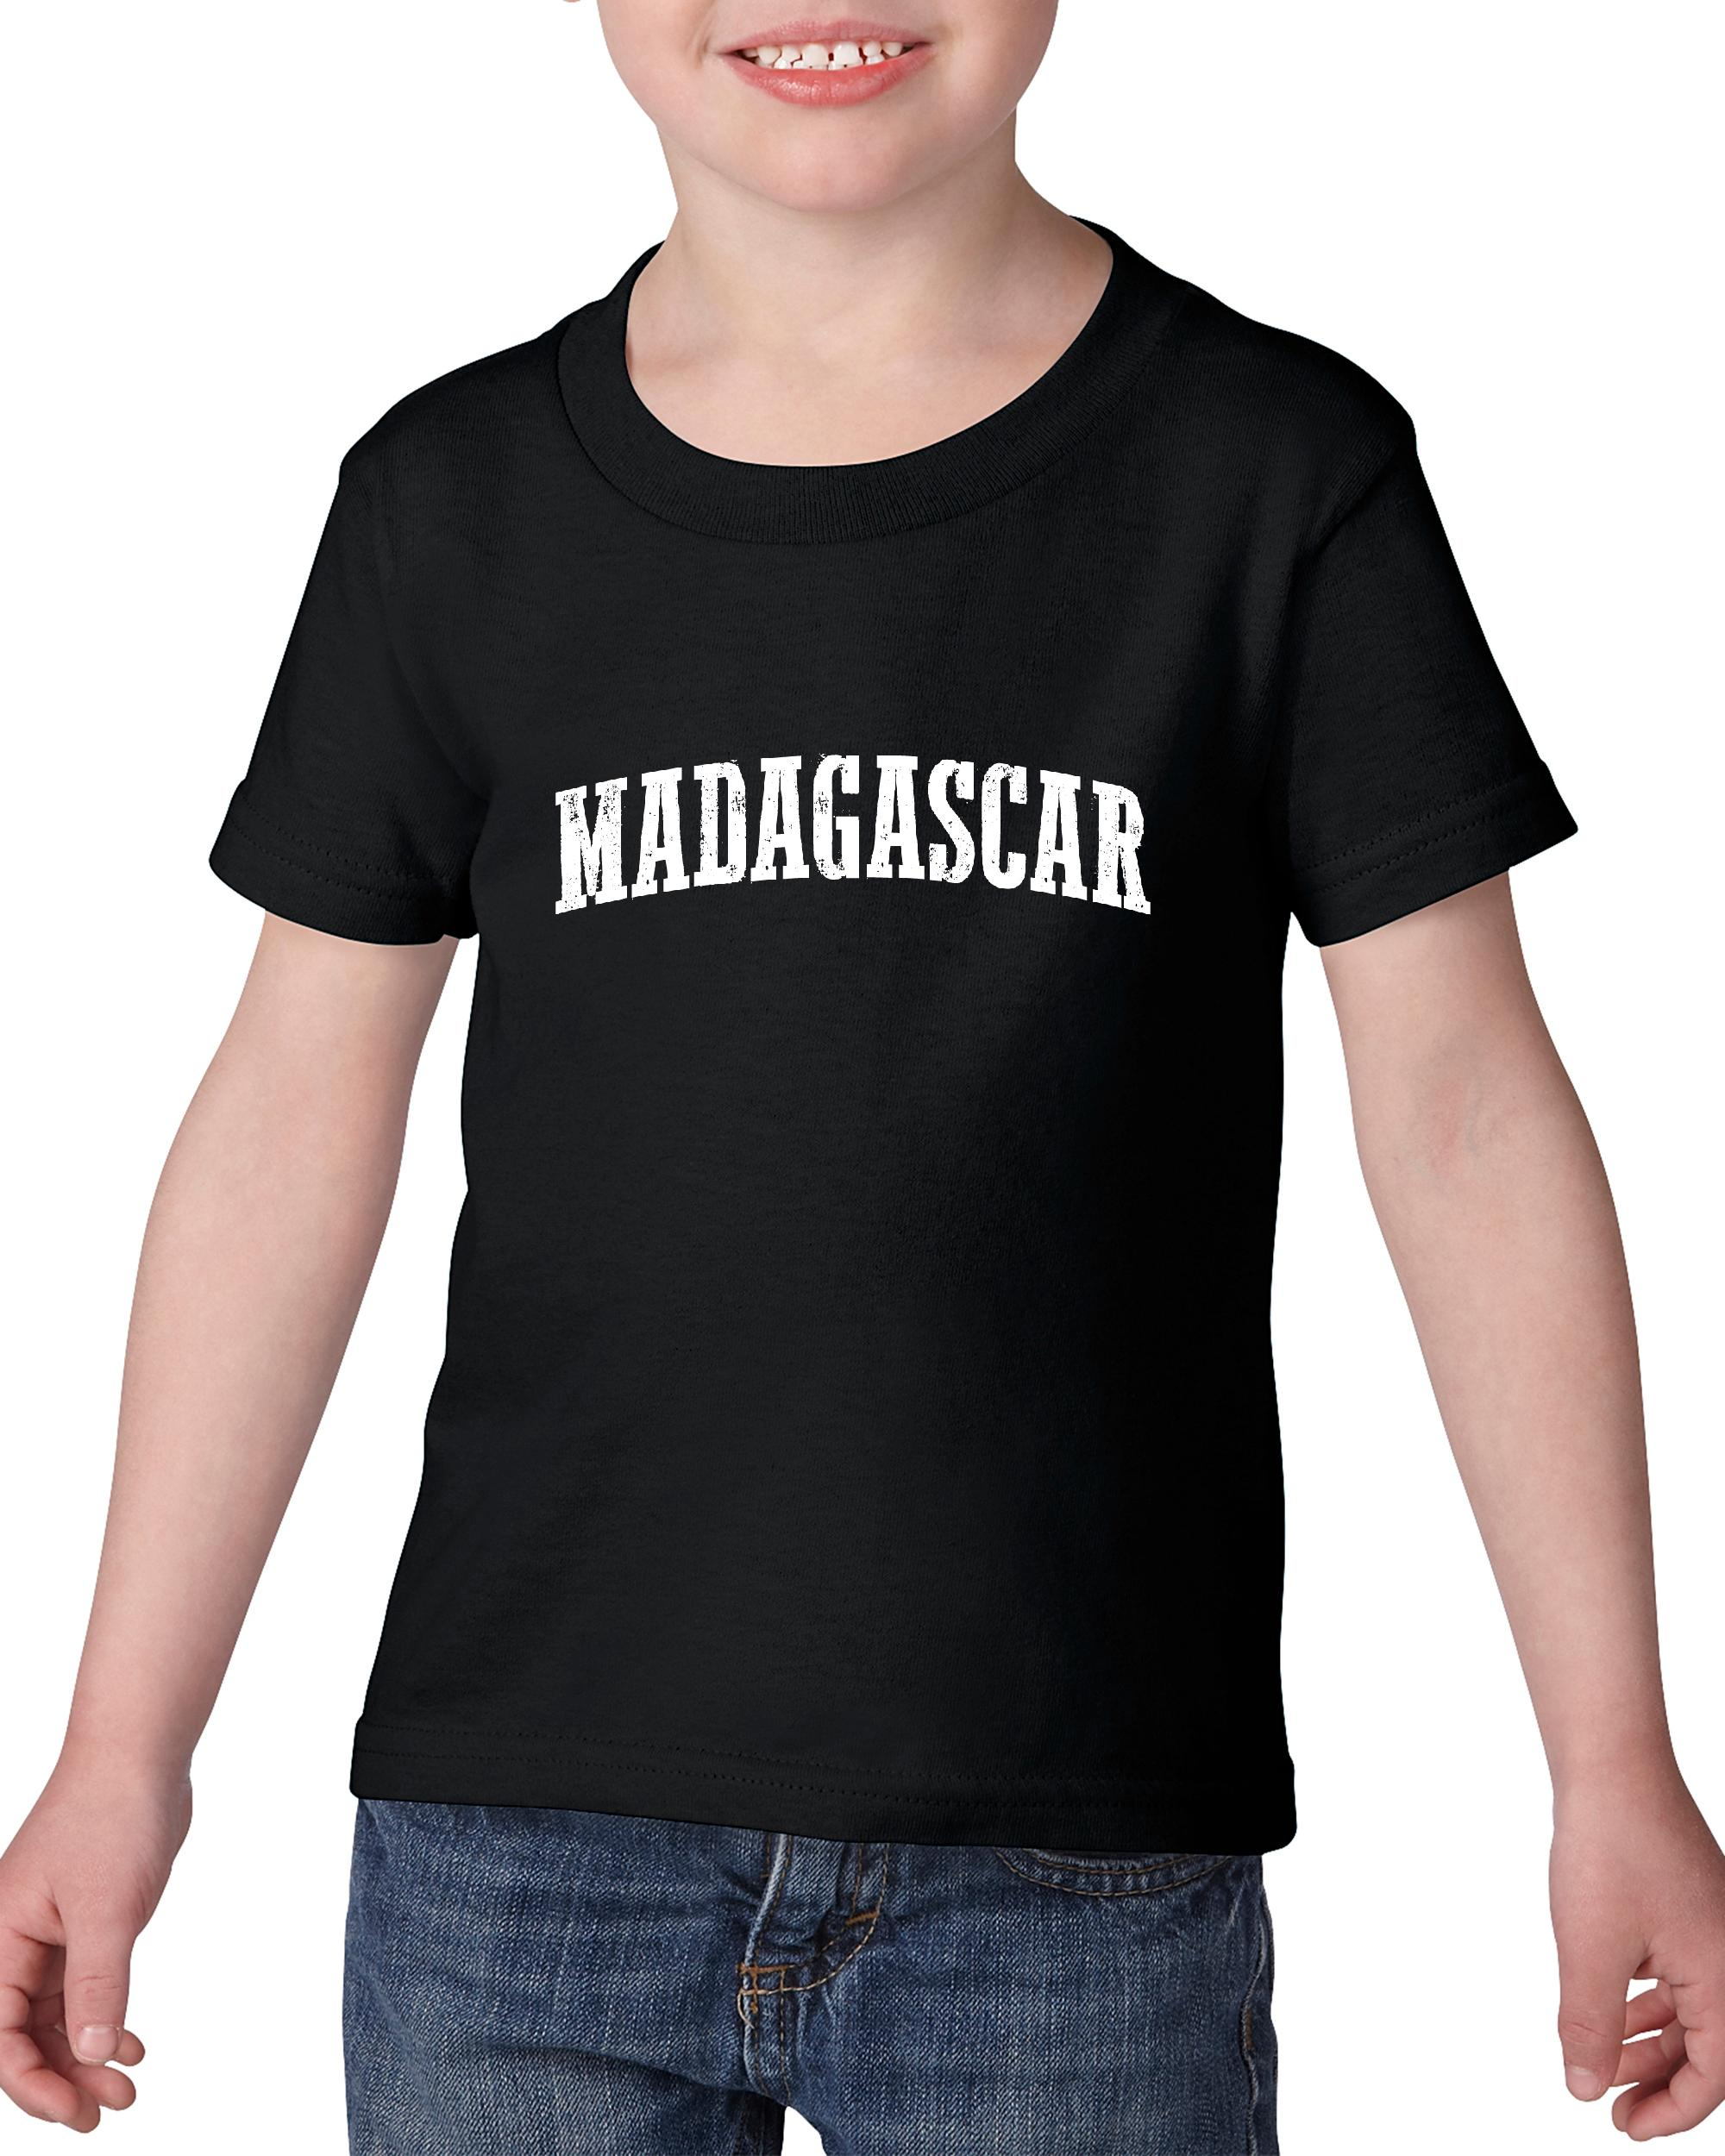 Artix What to do in Madagascar? Travel Time Flag Map Guide Flights Top 10 Things To Do Heavy Cotton Toddler Kids T-Shirt Tee Clothing